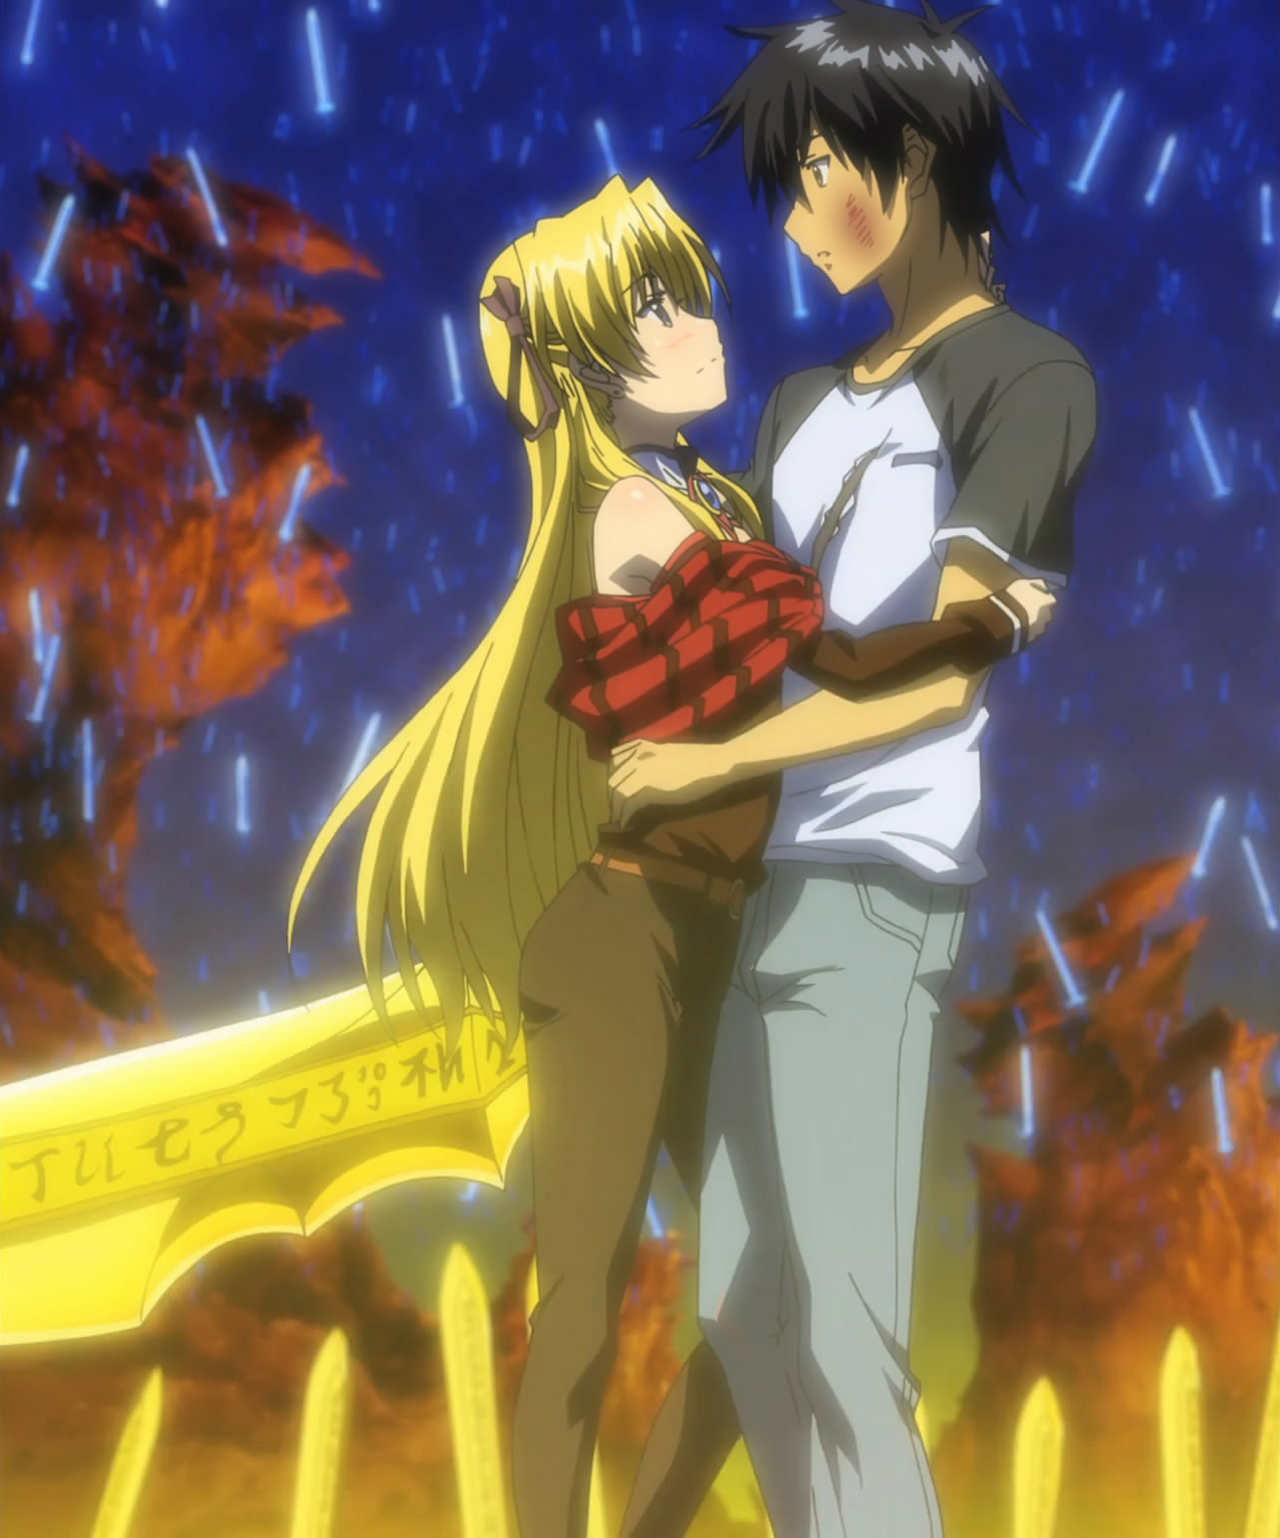 The Top 10 Best Romance Animes With Lots Of Kissing — ANIME